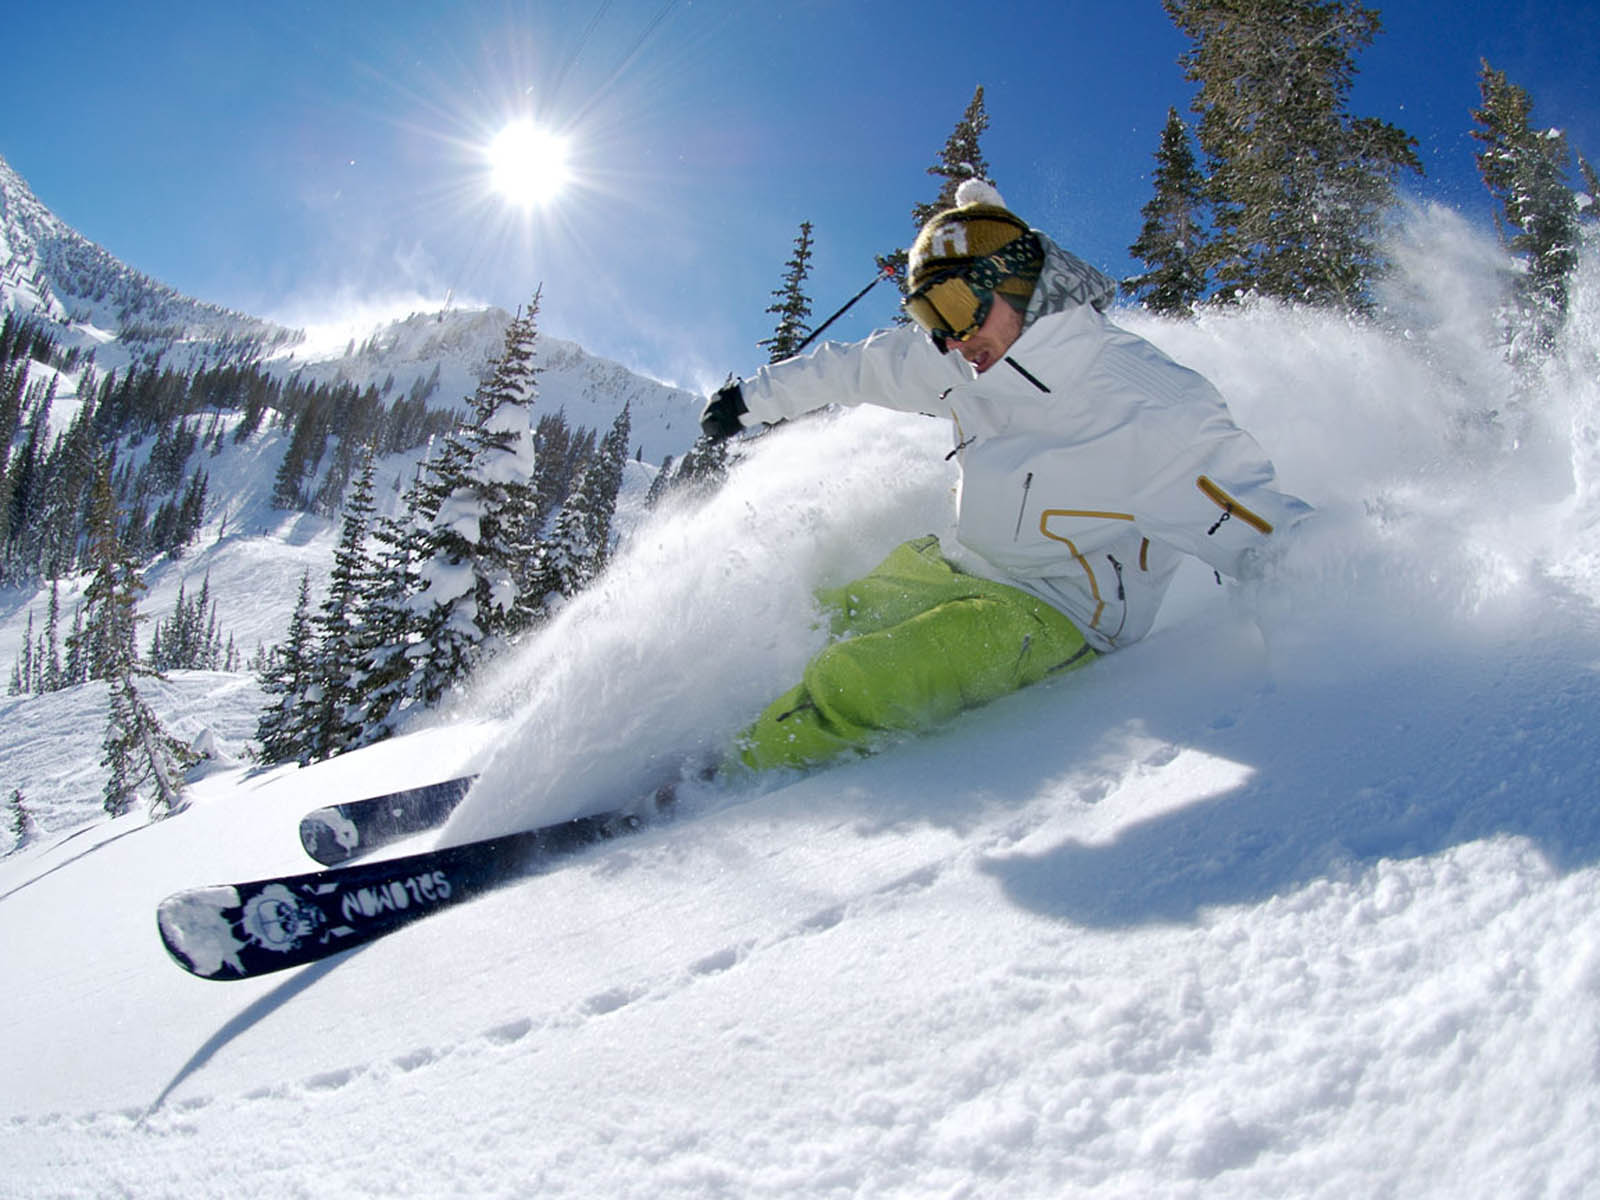 Skiing Wallpapers Images Photos Pictures And Backgrounds For 1600x1200